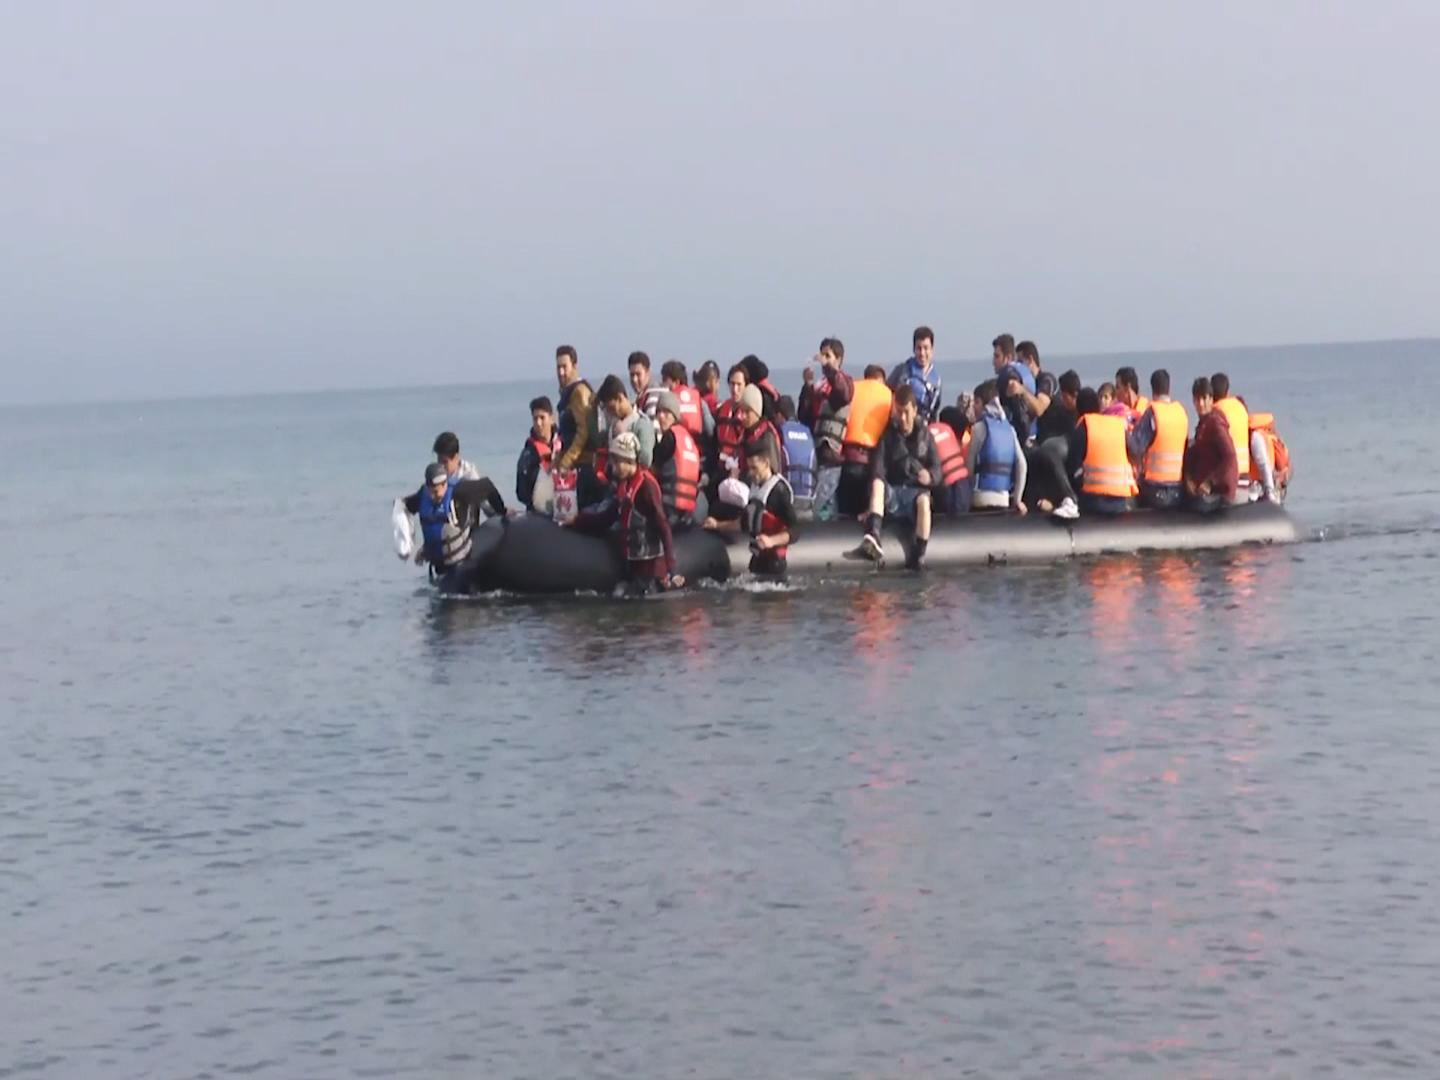 GREECE  CHILD MIGRANT DROWNINGS